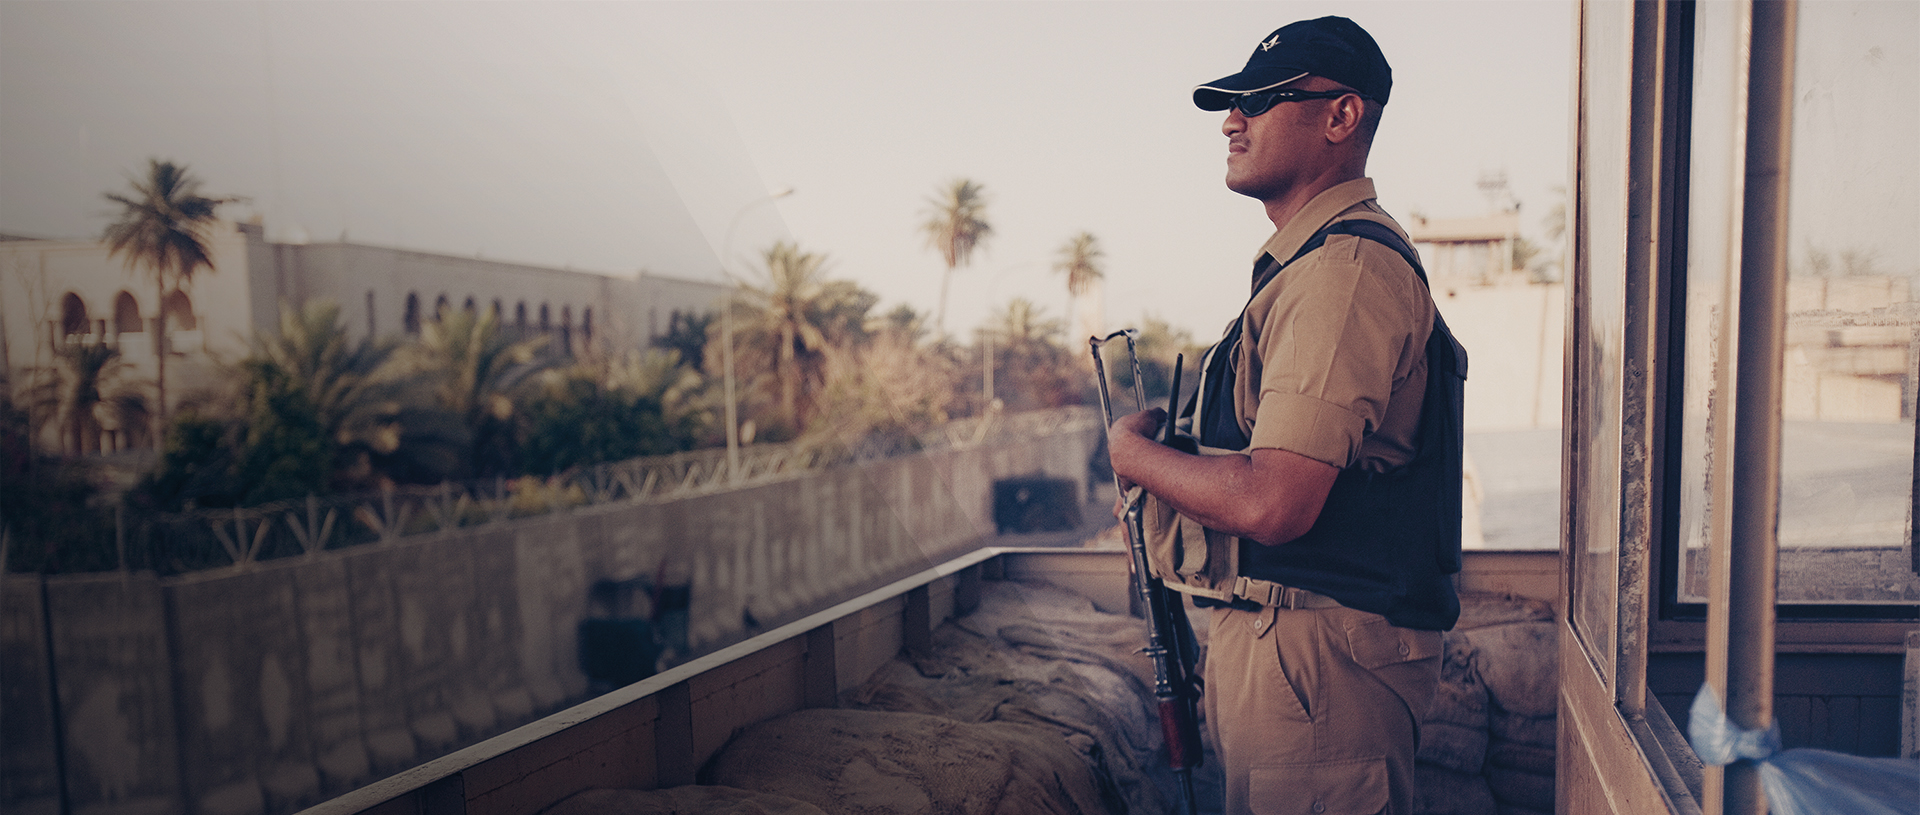 Security Jobs: Fixed Mobile Guard, Kuwait